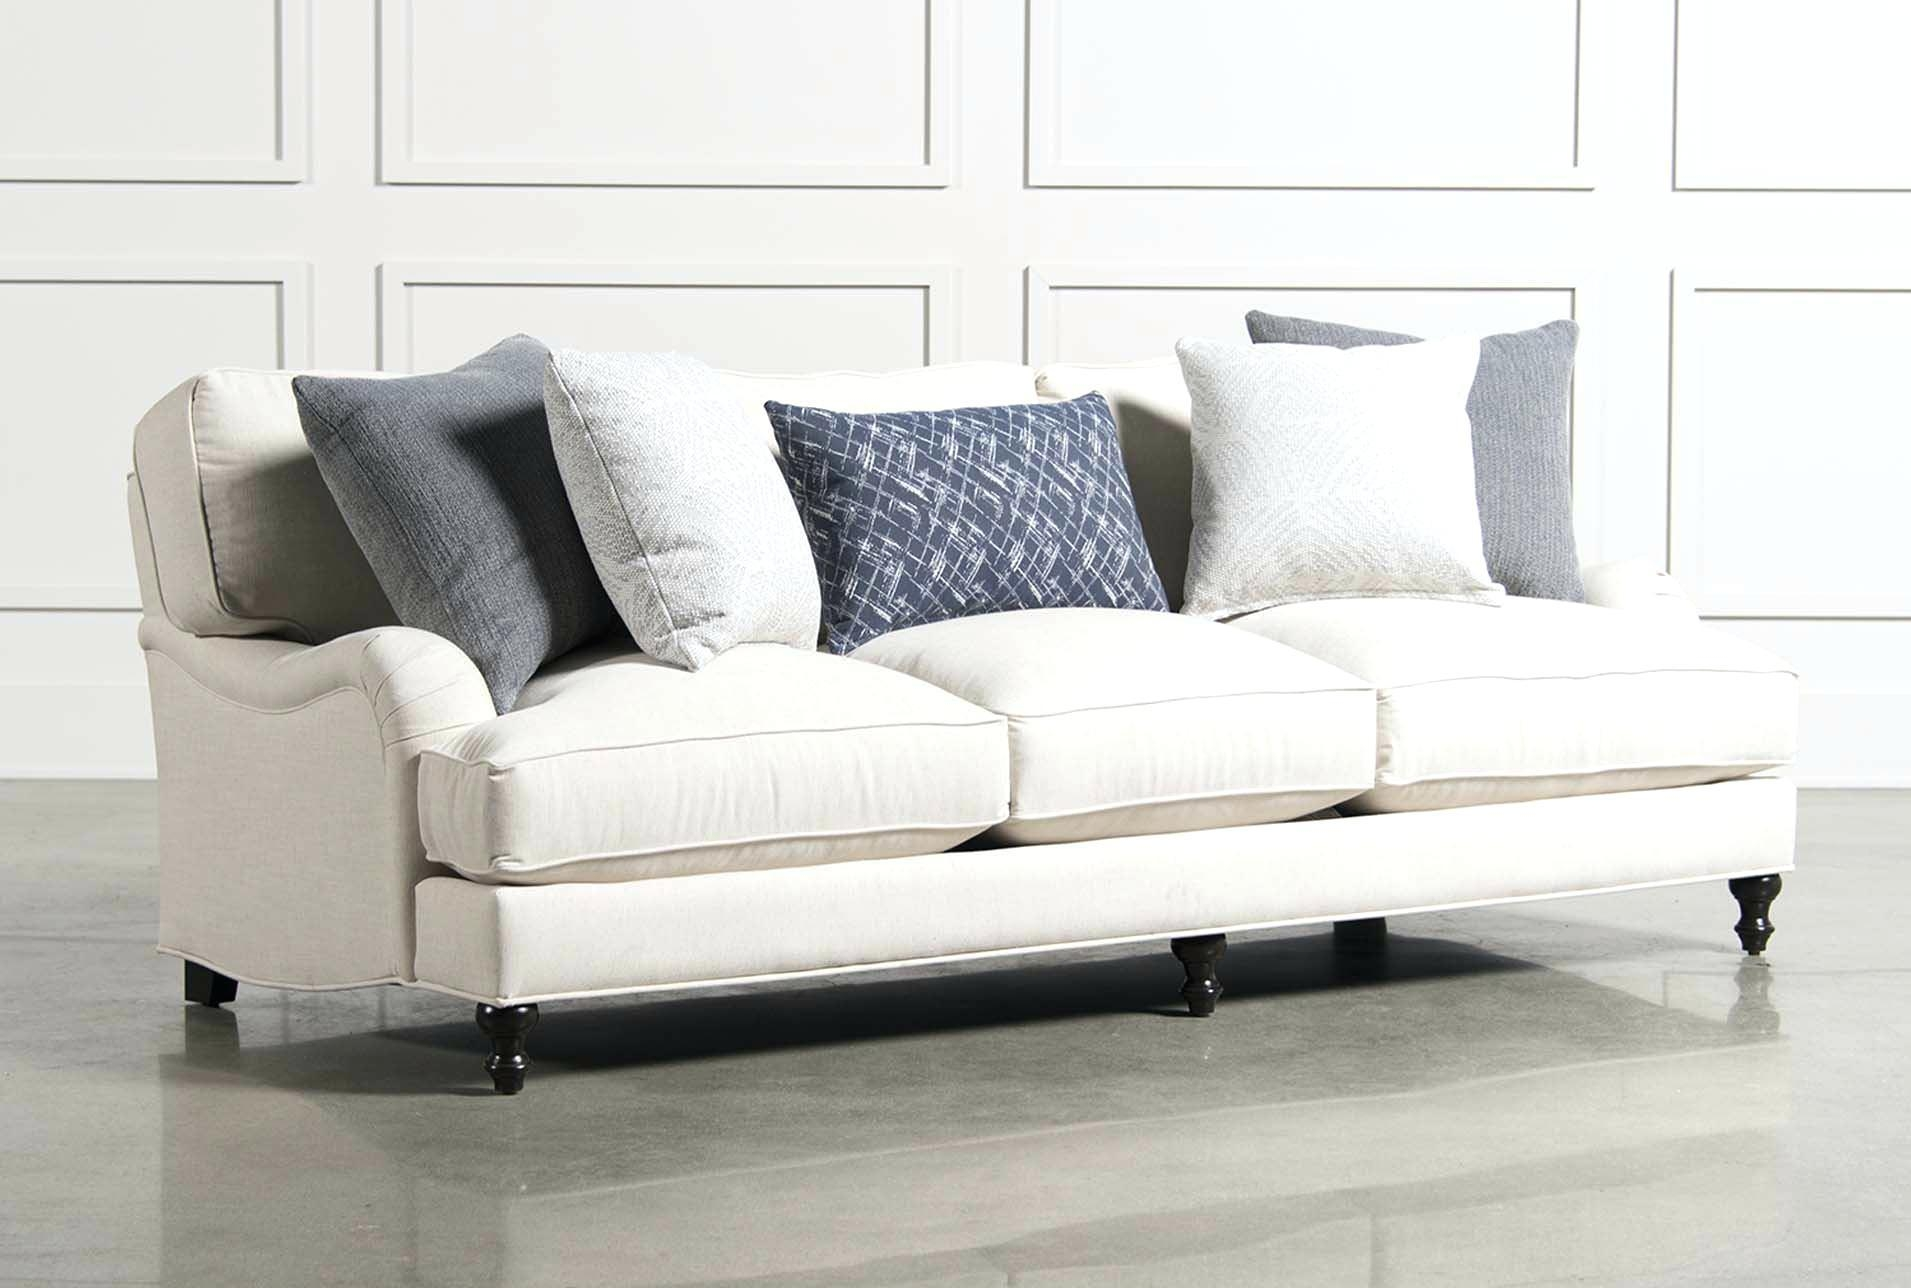 Leather And Material Sofas Uk Tetrad Mixed Fabric Sofa #15526 Intended For Leather And Material Sofas (Image 10 of 21)